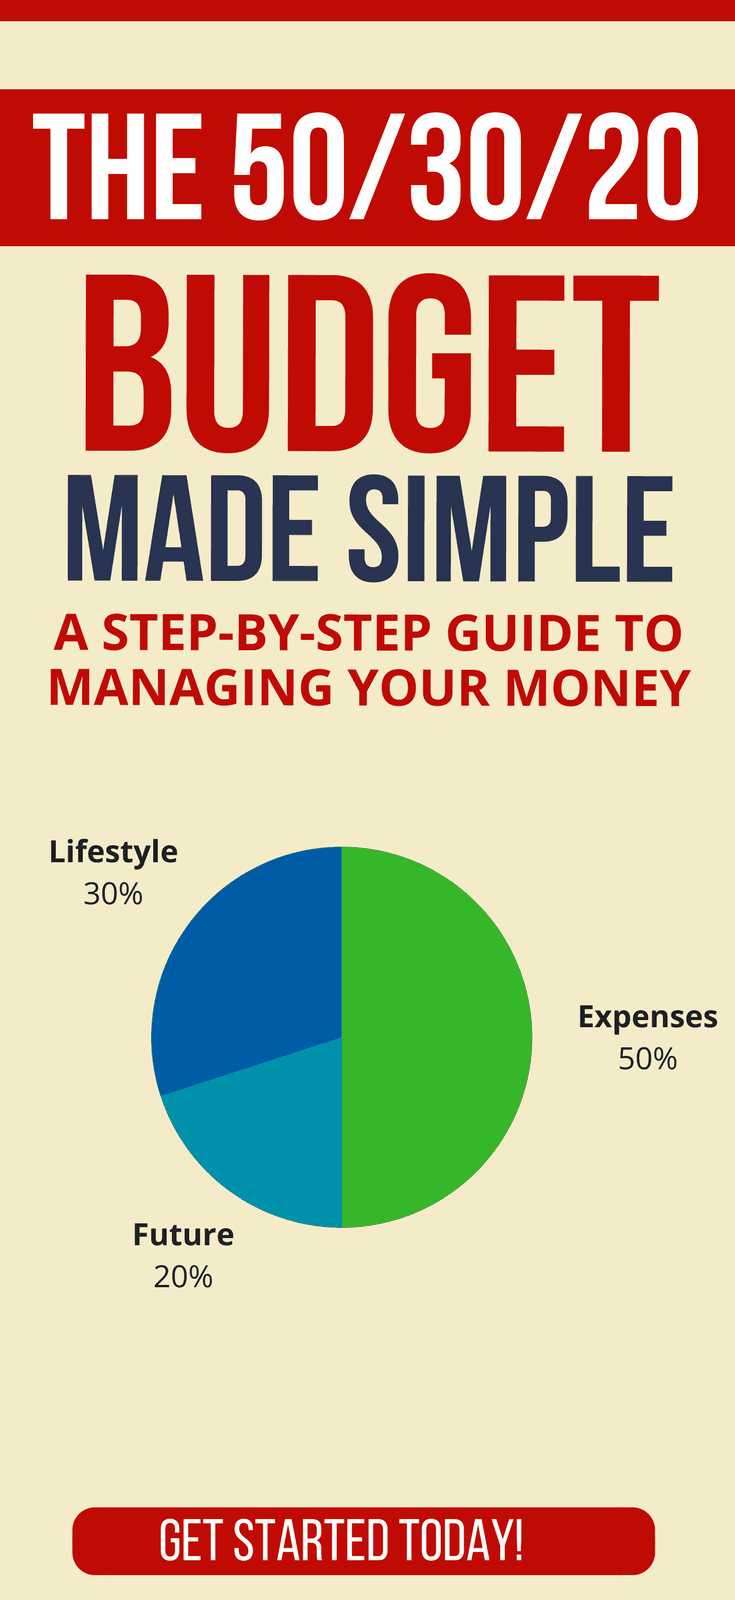 50/30/20 Budget Formula Made Simple: Step-By-Step Guide To Managing Your Money 50/20/30 budget the rules | 50/20/30 savings  | budgeting for beginners get started | budgeting formula | how to budget your money for beginners #thewaystowealth #budget #budgeting #moneymanagement